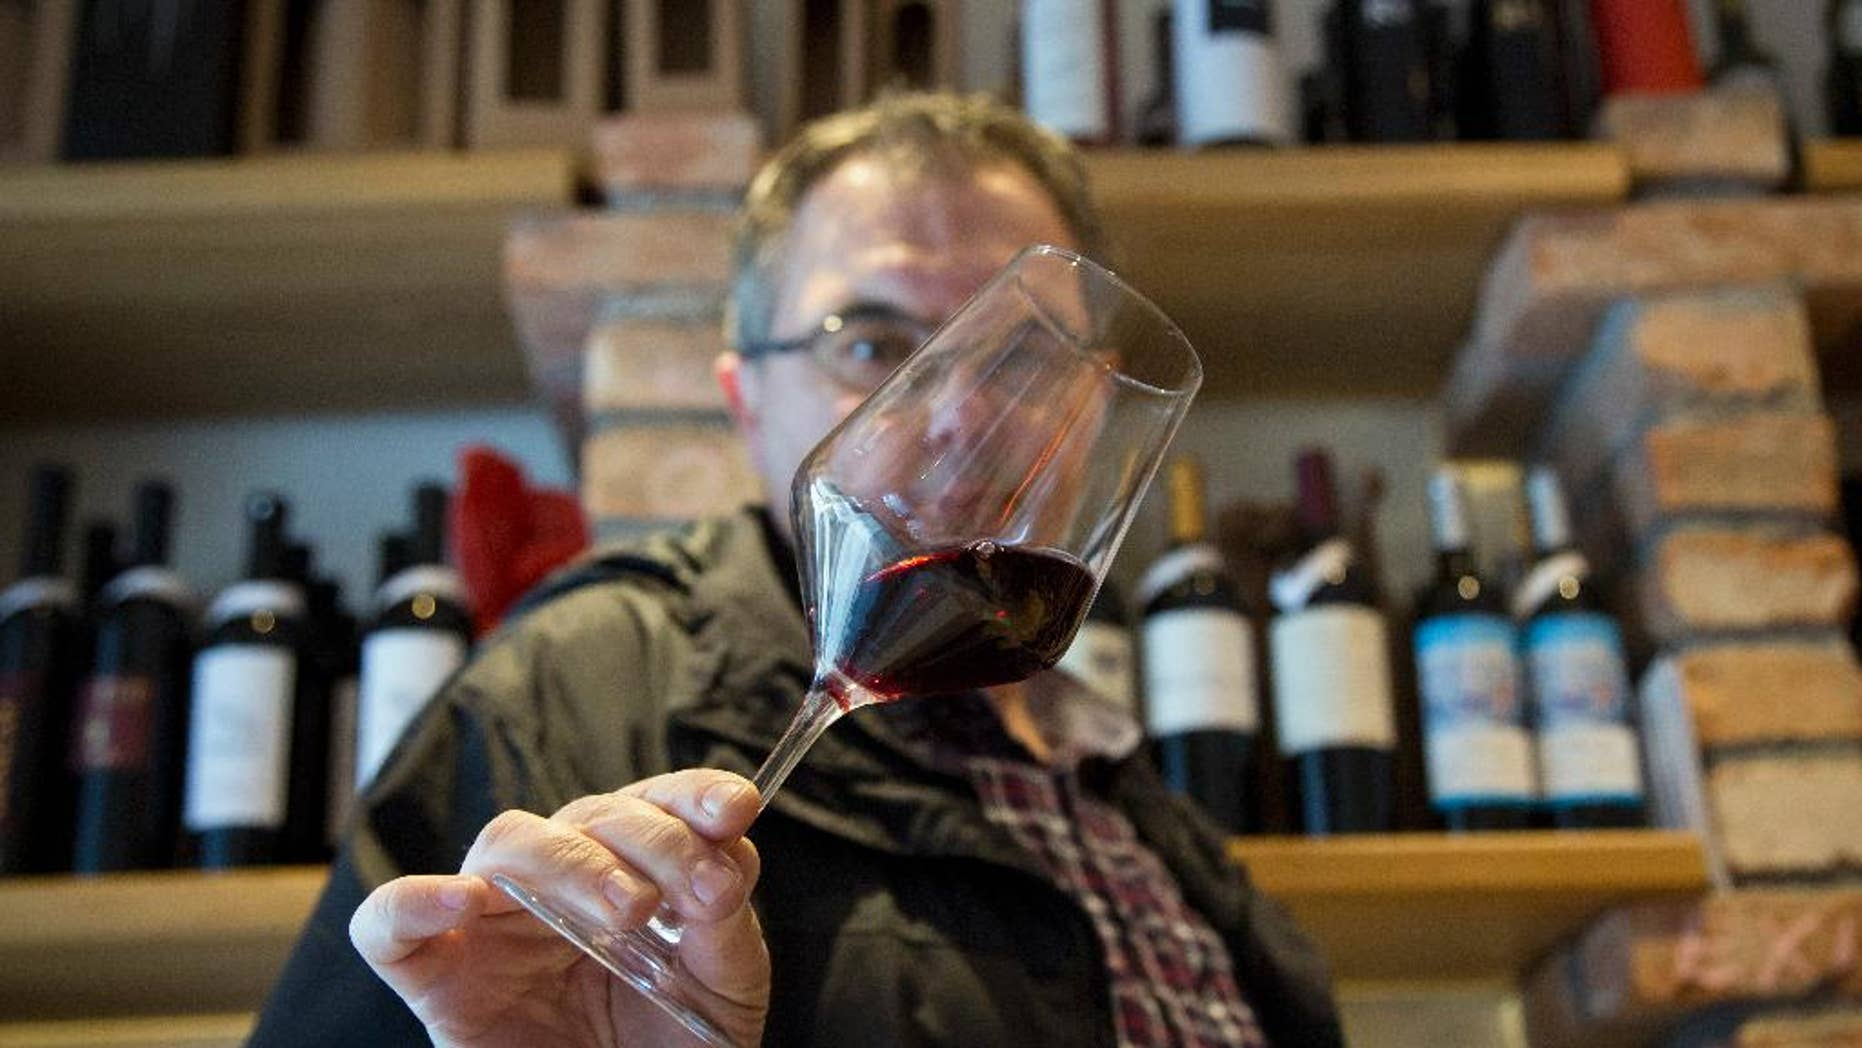 """FILE - In this Wednesday, March 1, 2017 file photo, Robert Samek, a sommelier, inspects a glass of red wine at his wine shop in Zagreb, Croatia. Slovenian winemakers say they expect the European Commission to suspend the procedure of issuing a permit to Croatia to use the Teran red wine brand in the 28-nation bloc. The head of a Slovenian group to protect Teran, Marjan Colja, told The Associated Press on Friday, March 10 that his group has """"no doubt"""" documentation presented by Croatia has been """"partly forged."""" (AP Photo/Darko Bandic, file)"""